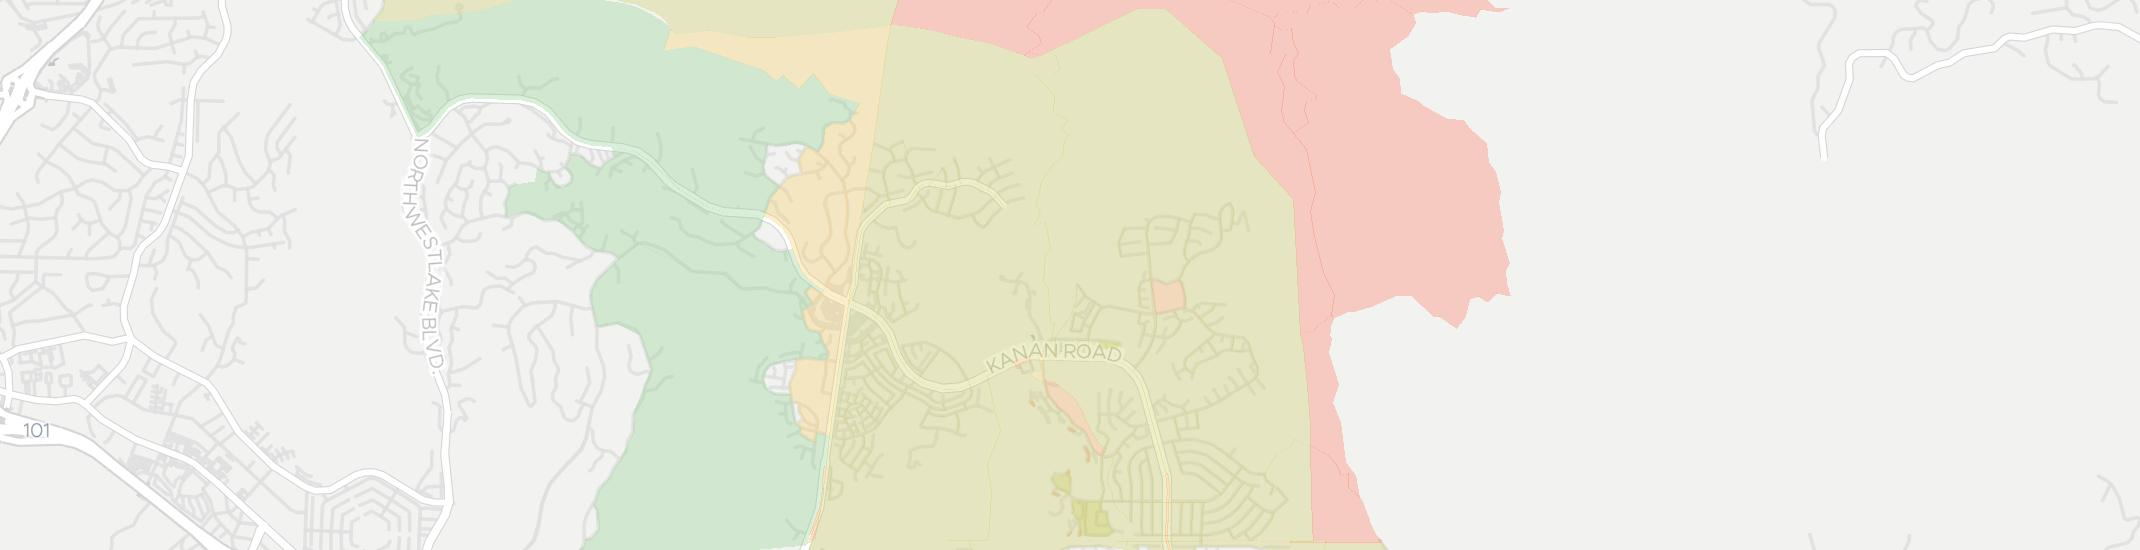 Oak Park California Map.Internet Providers In Oak Park Ca Compare 12 Providers